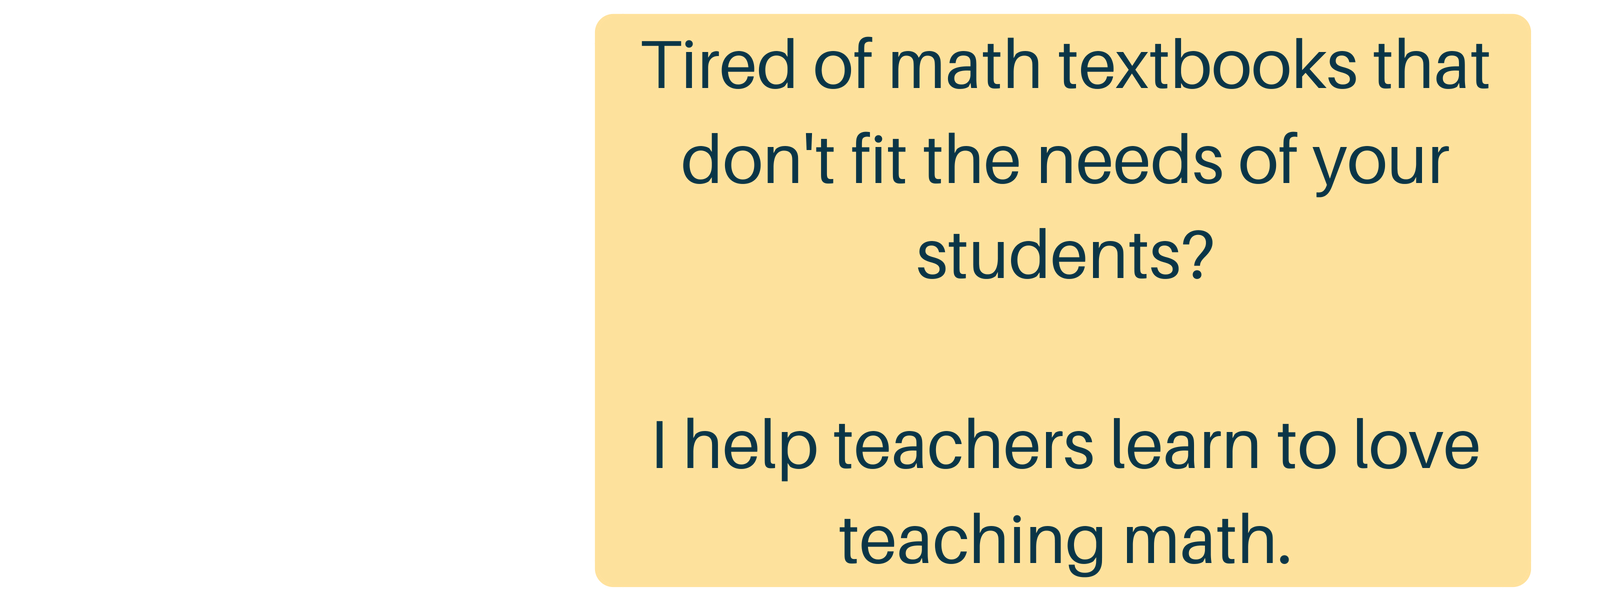 Build math minds teaching math isnt easy and for a lot of teachers it isnt funlike at all fandeluxe Choice Image